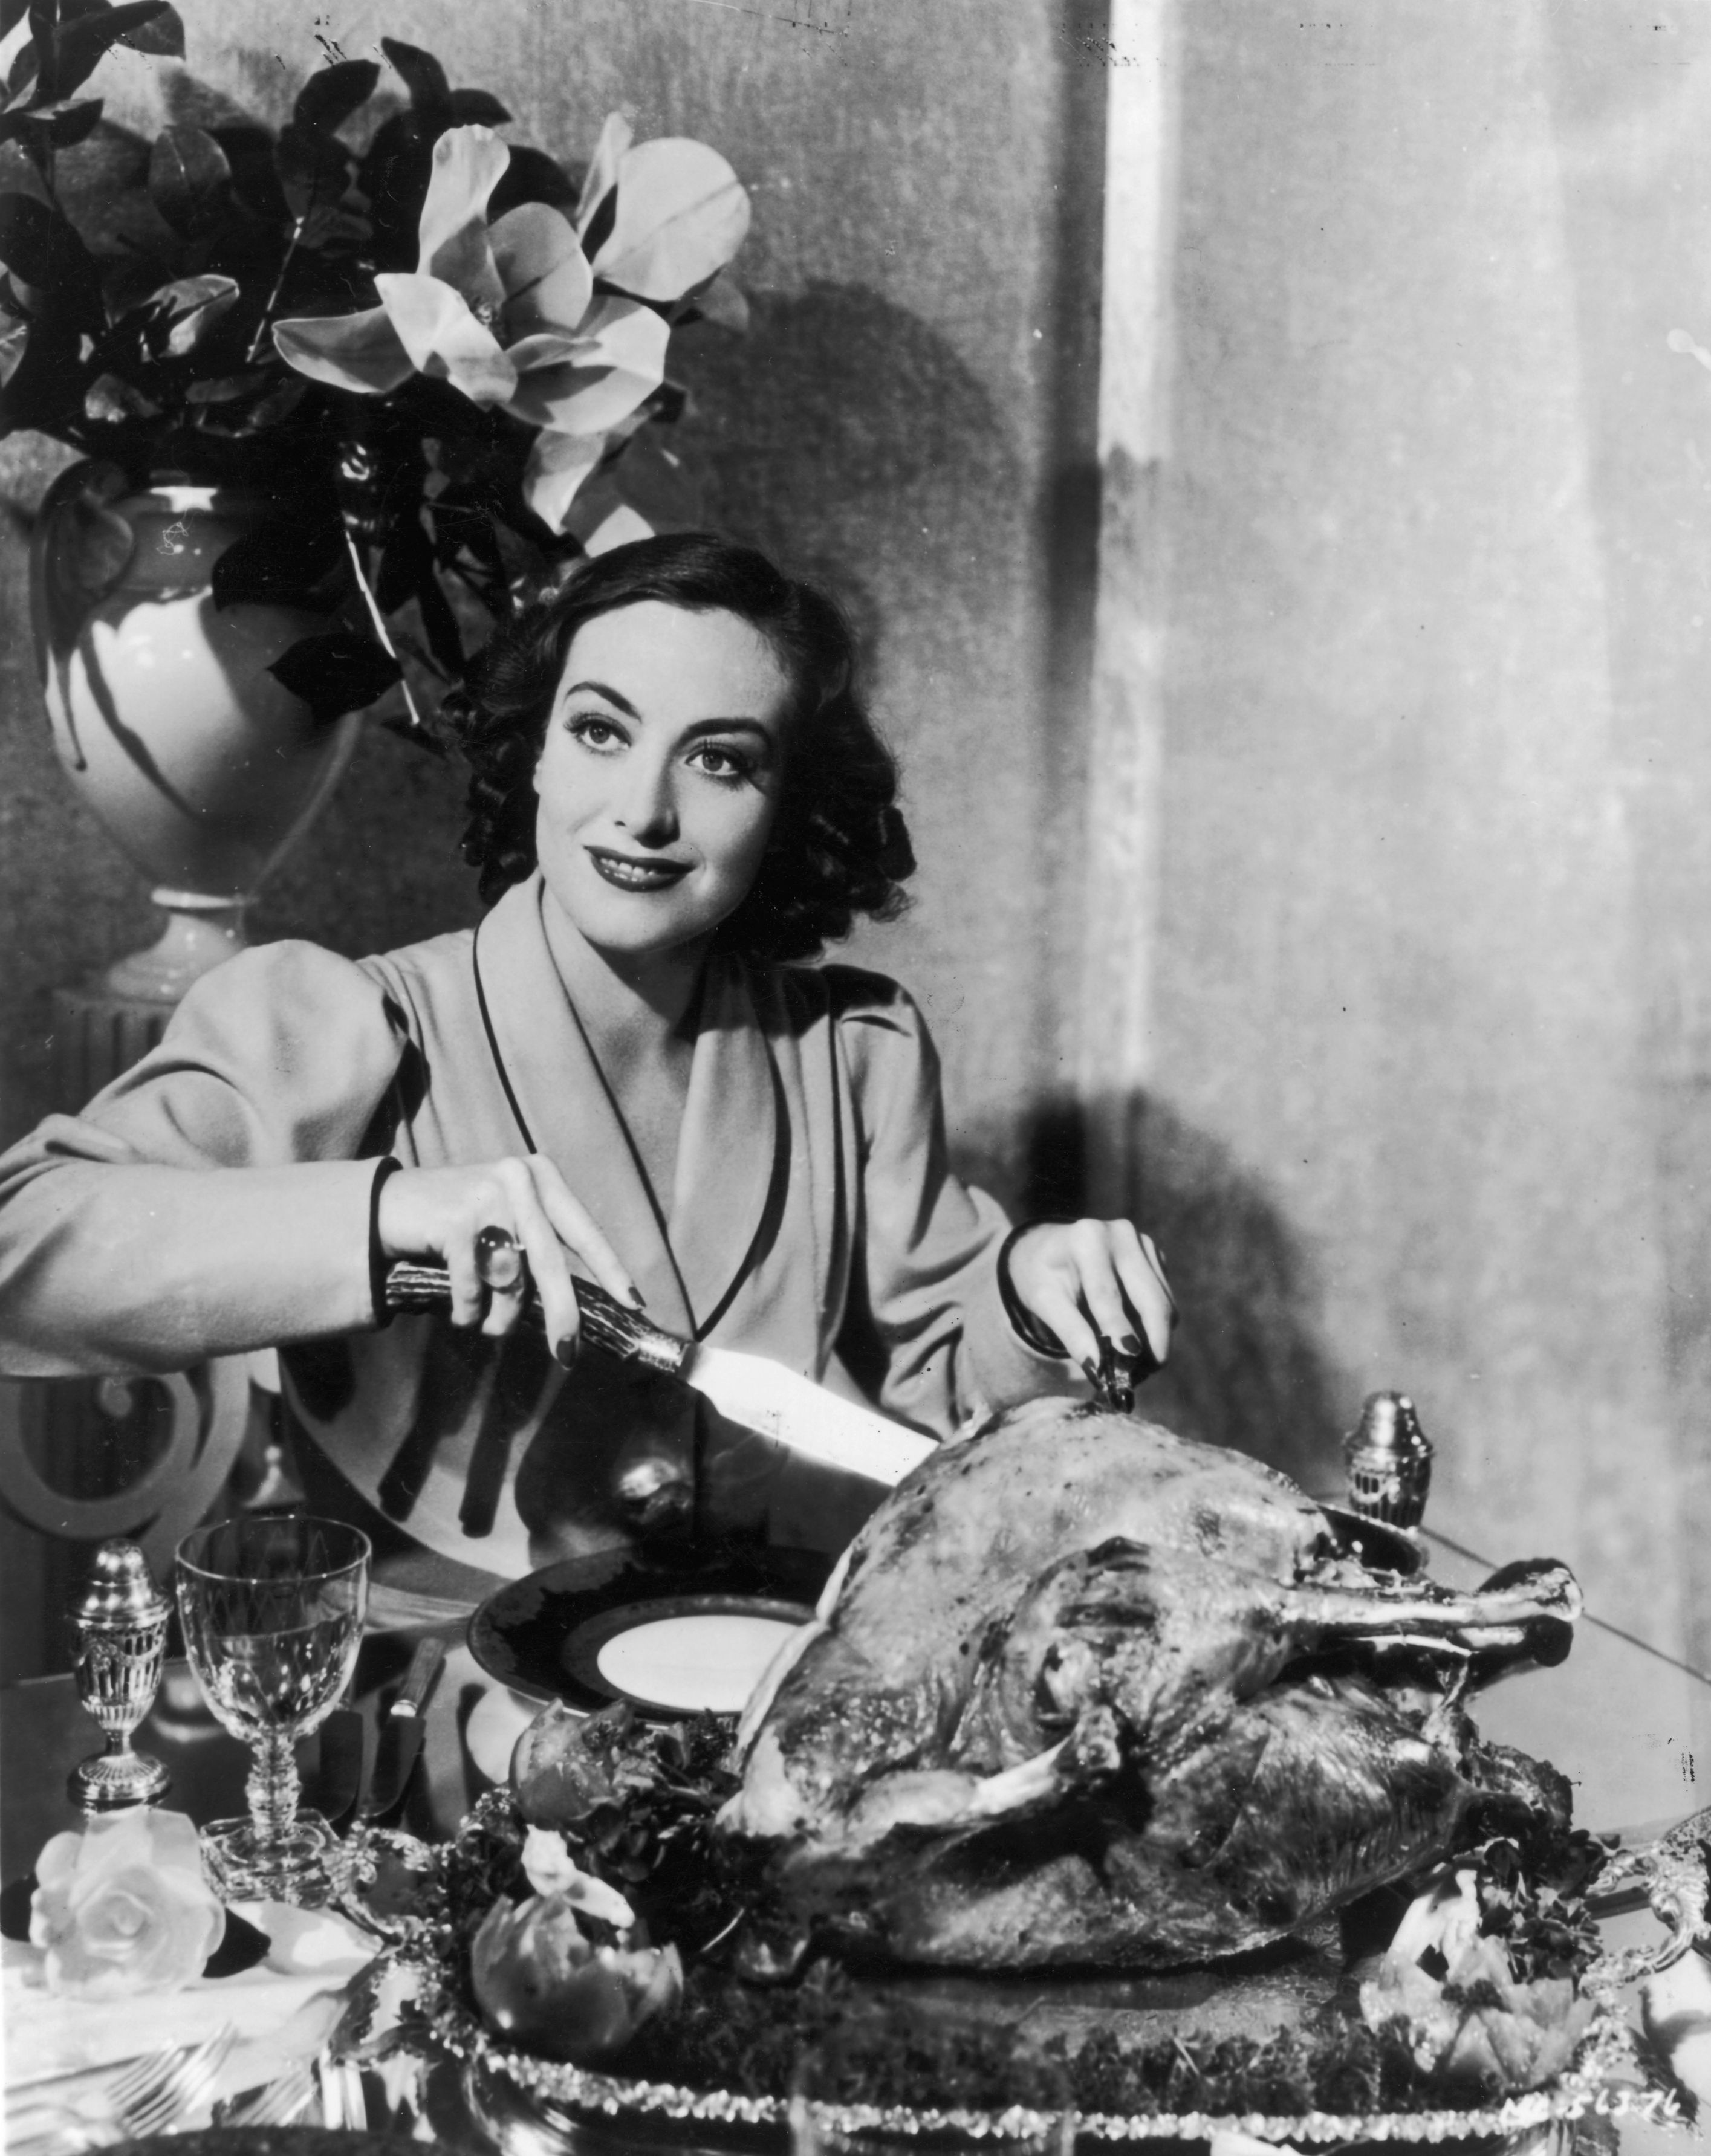 48 Vintage Thanksgiving Photos - Retro Photos from Thanksgivings Past